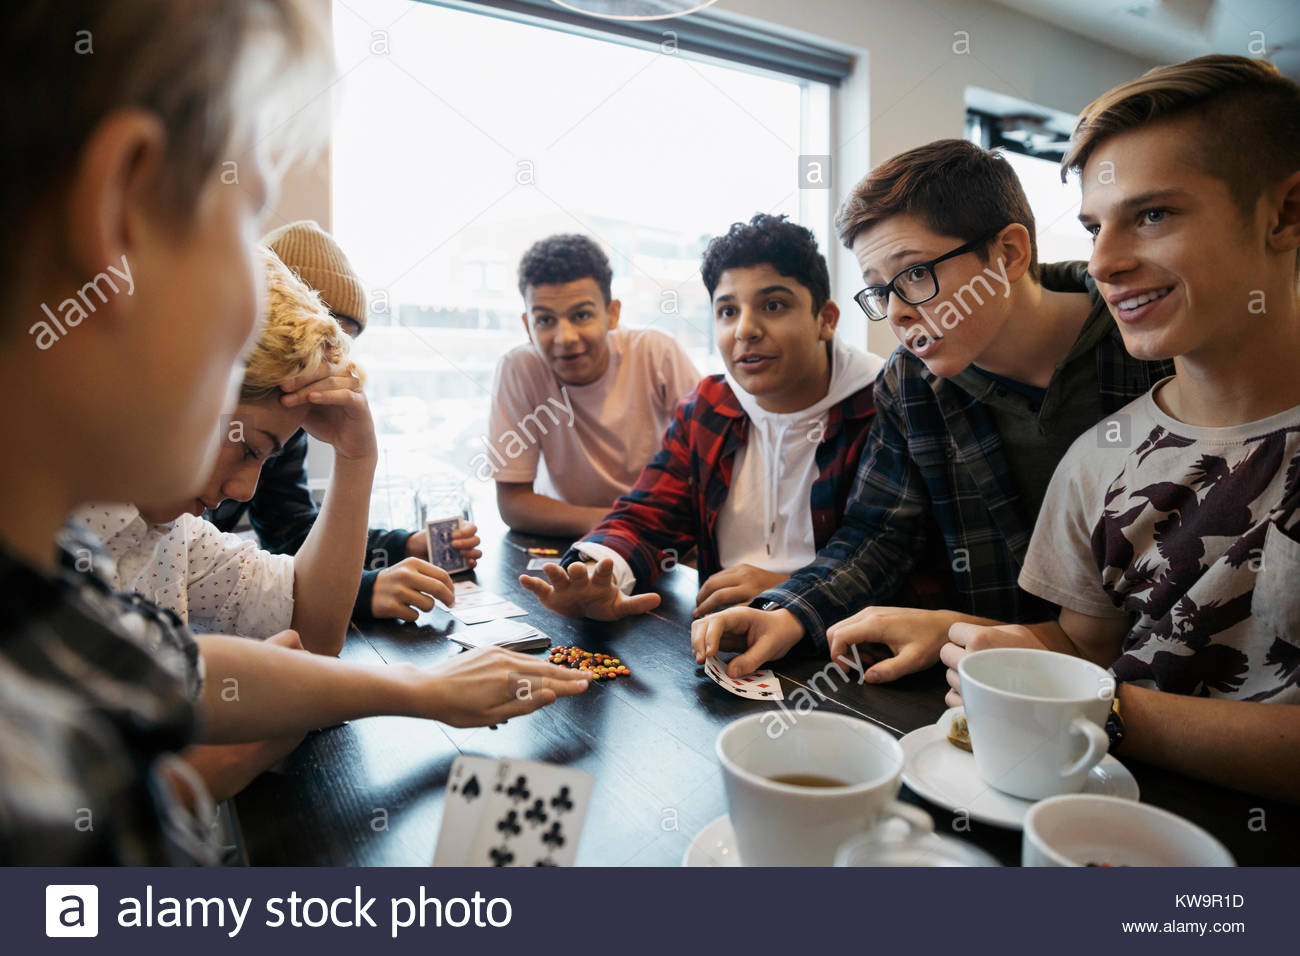 Tween boy friends playing cards and drinking coffee at cafe table - Stock Image